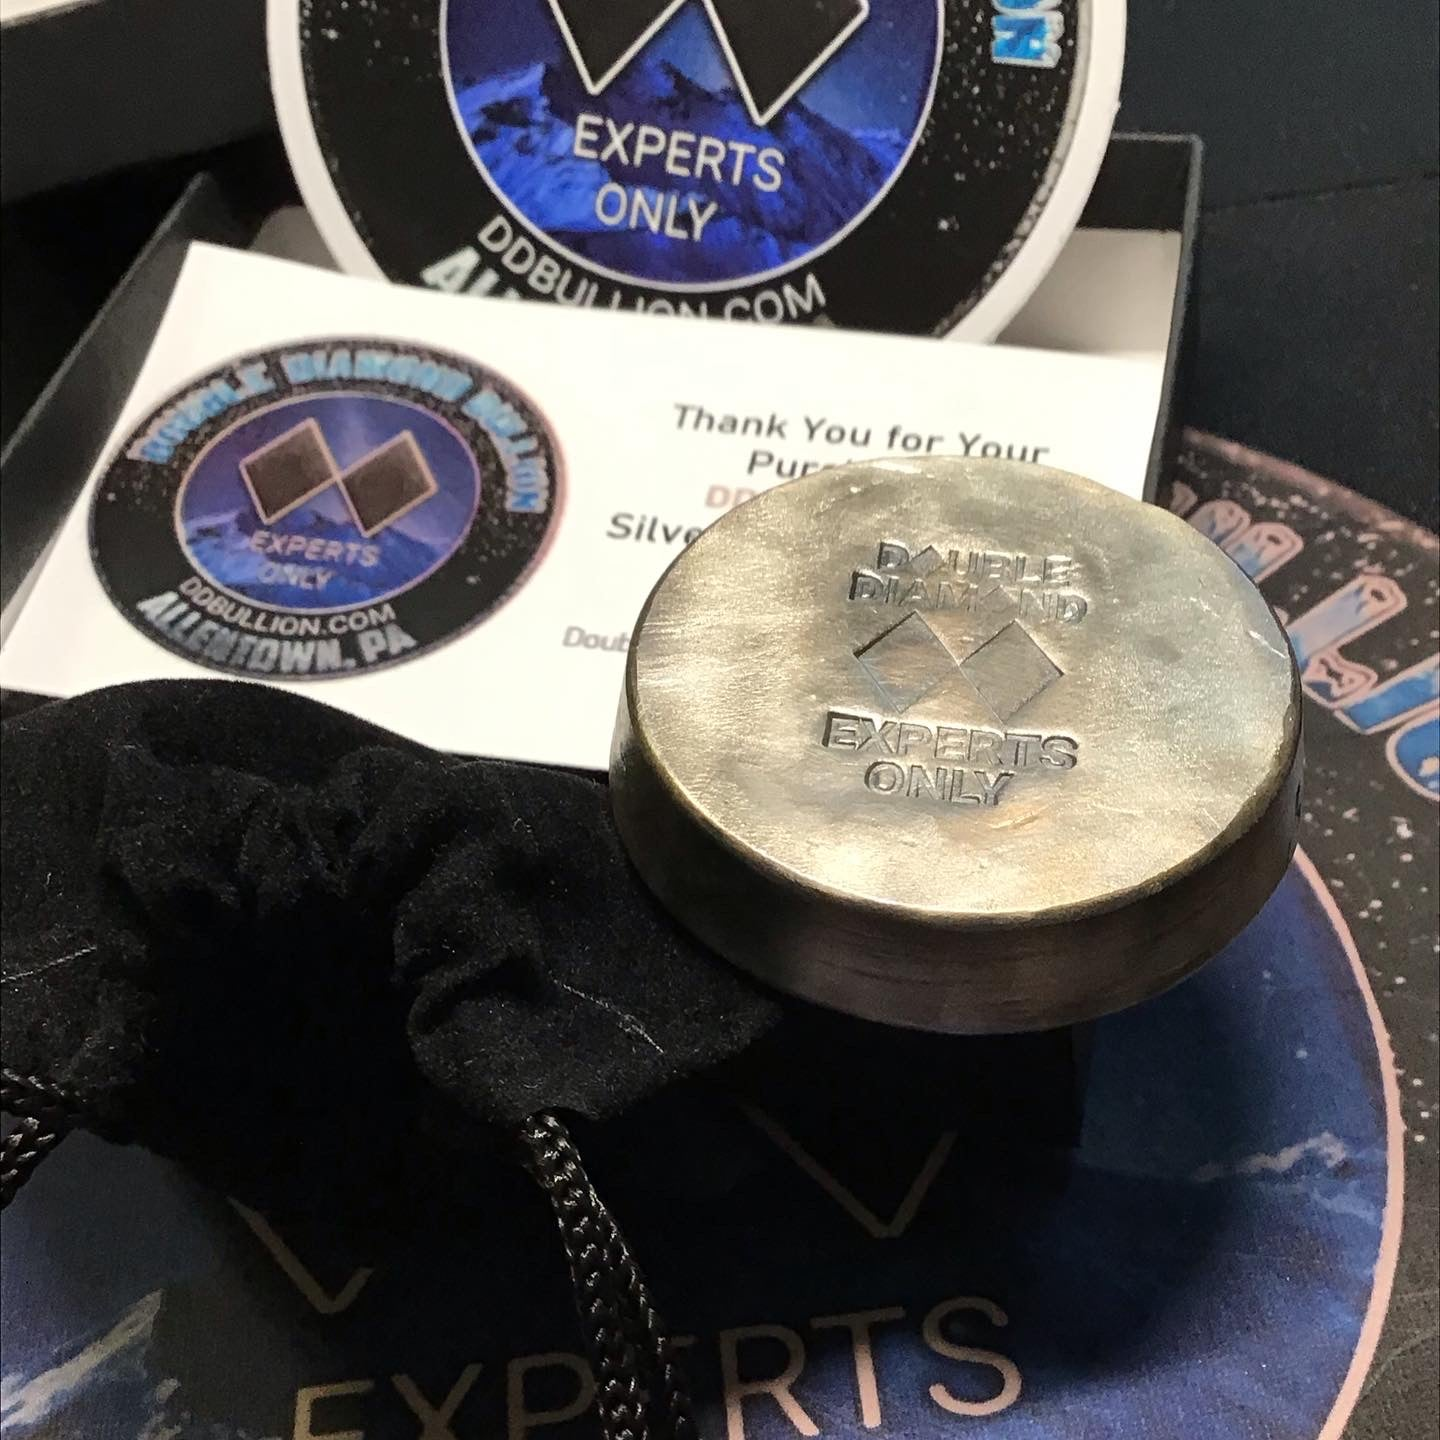 "Double Diamond Bullion ""Experts Only"" 5 oz. Boulder Chunk Silver Round"